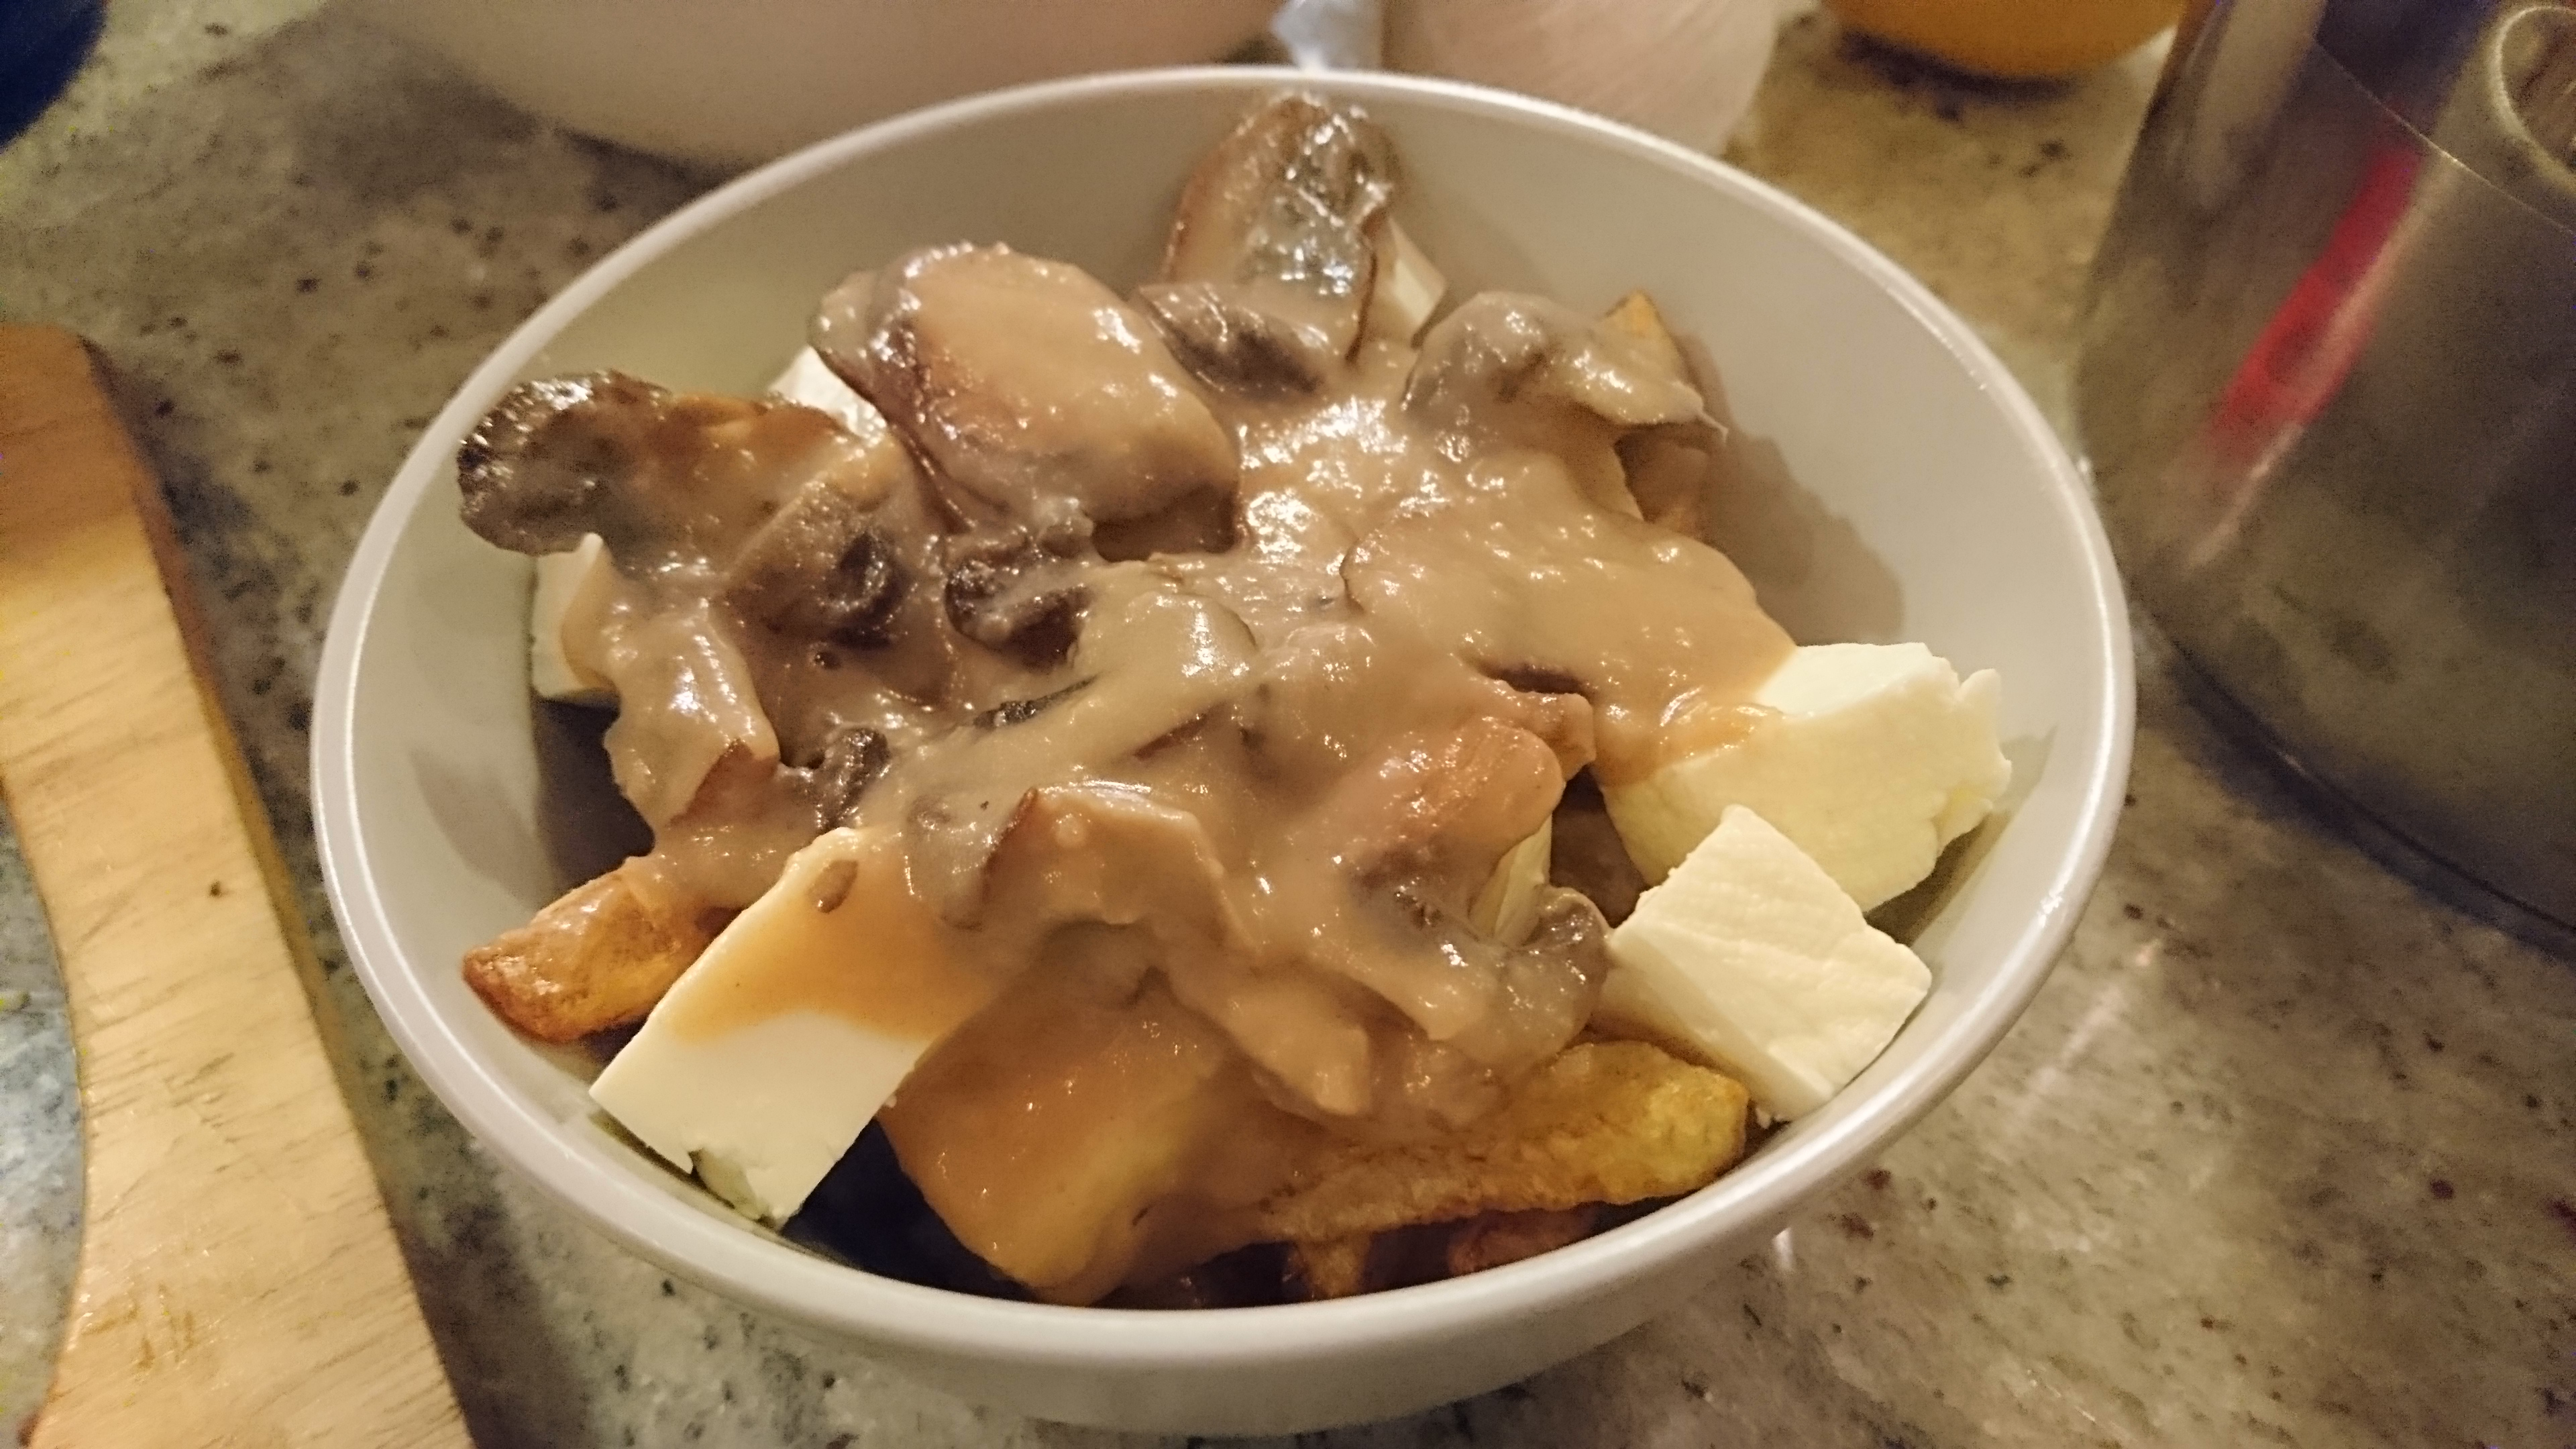 a bowl of homemade poutine